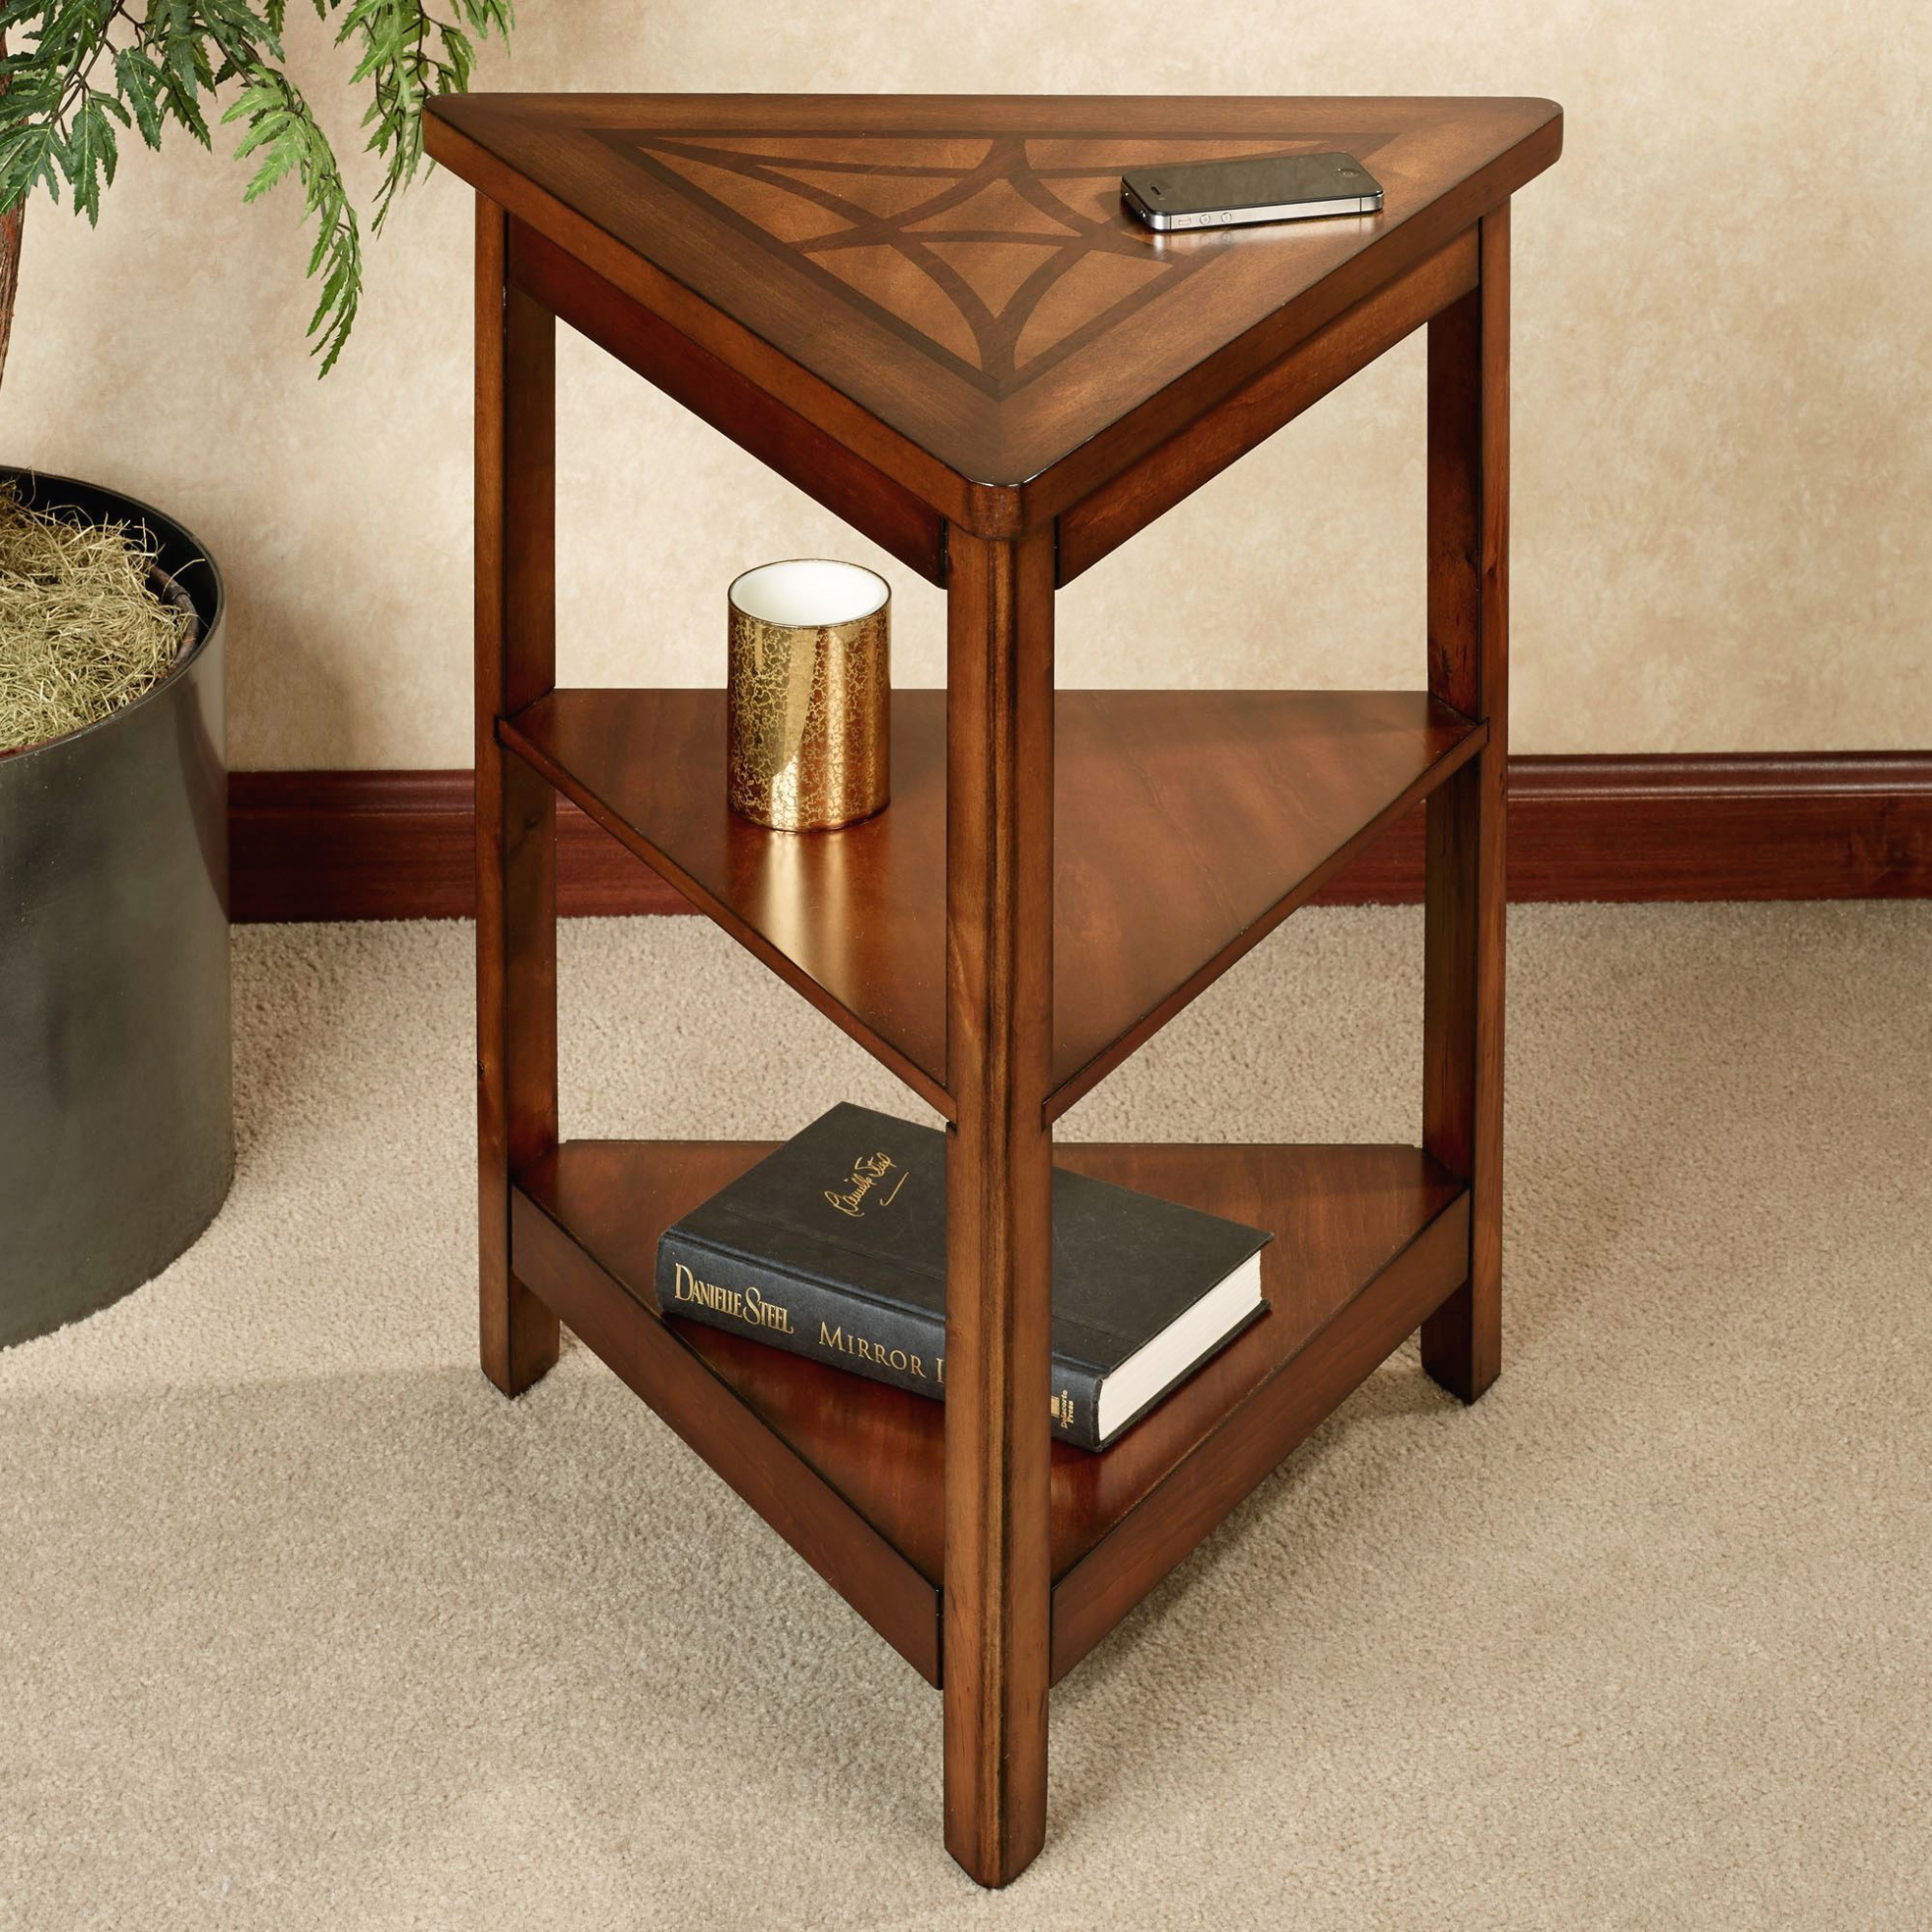 furniture three tiers wood triangle end table with shelves gallery nice accent shelf applied your home inspiration storage steel coffee legs walnut nest tables west elm scoop lamp